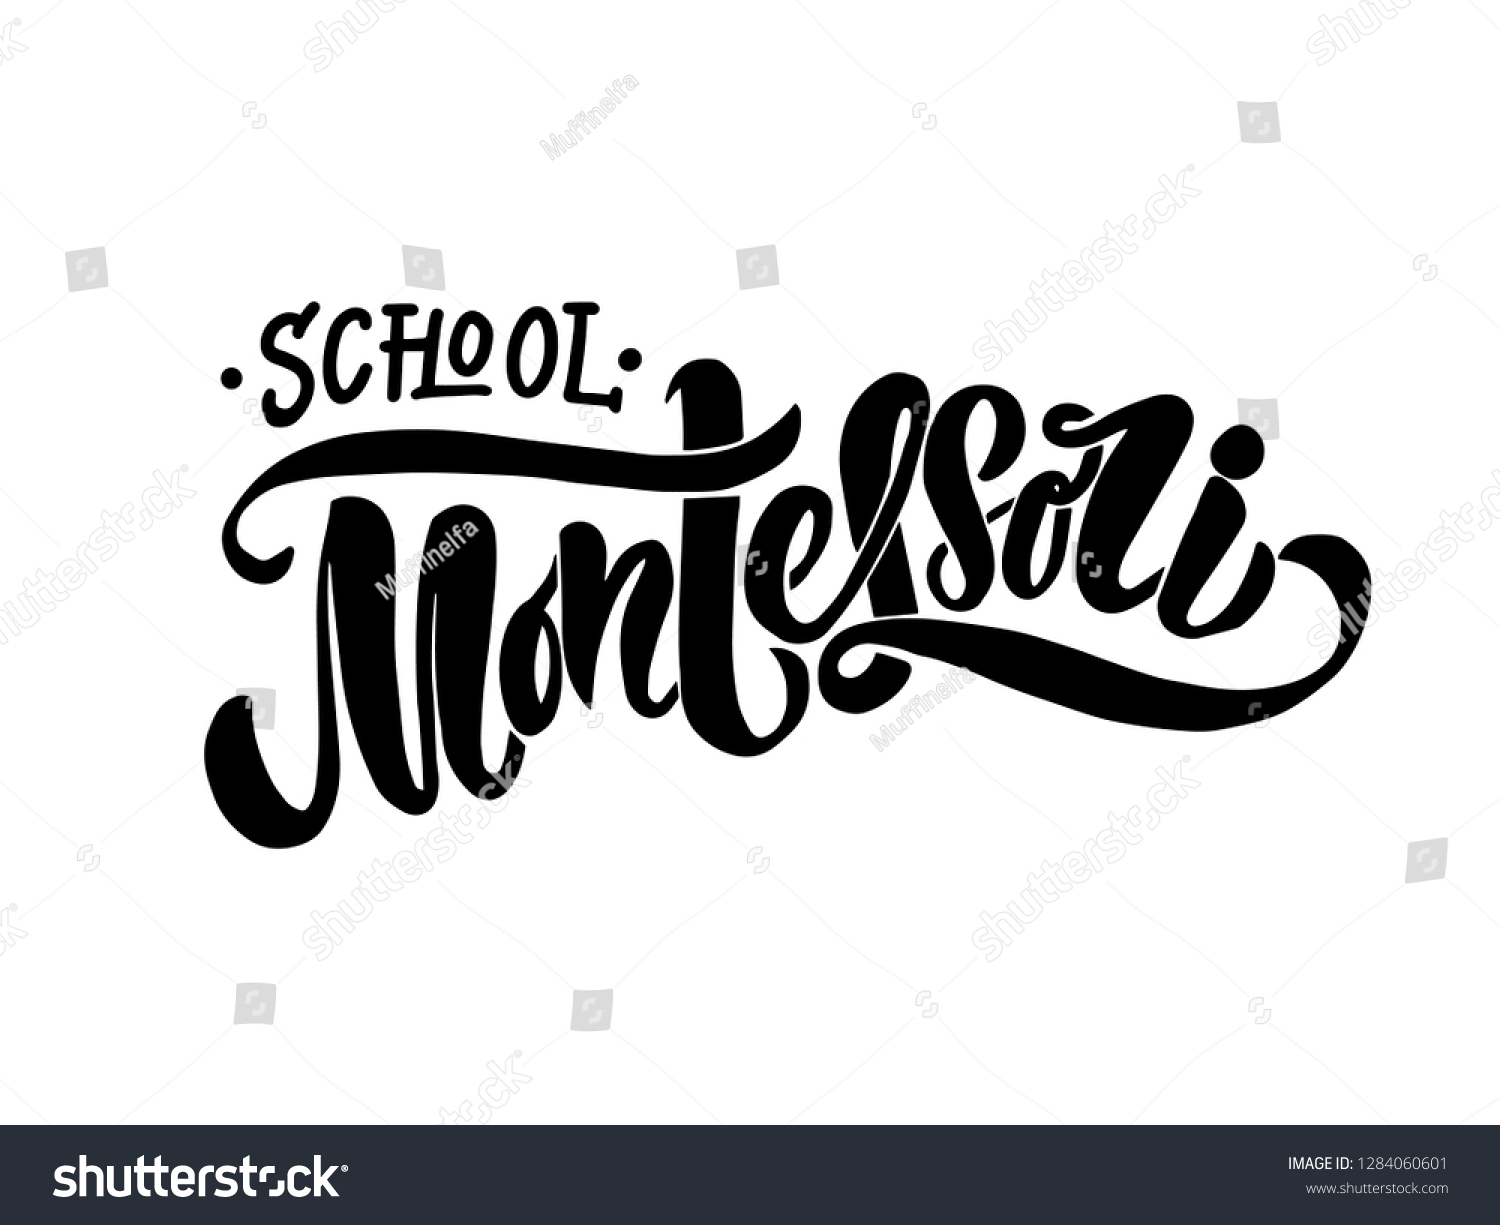 Montessori school creative vector concept black isolated on white background logotype handdrawn lettering vector